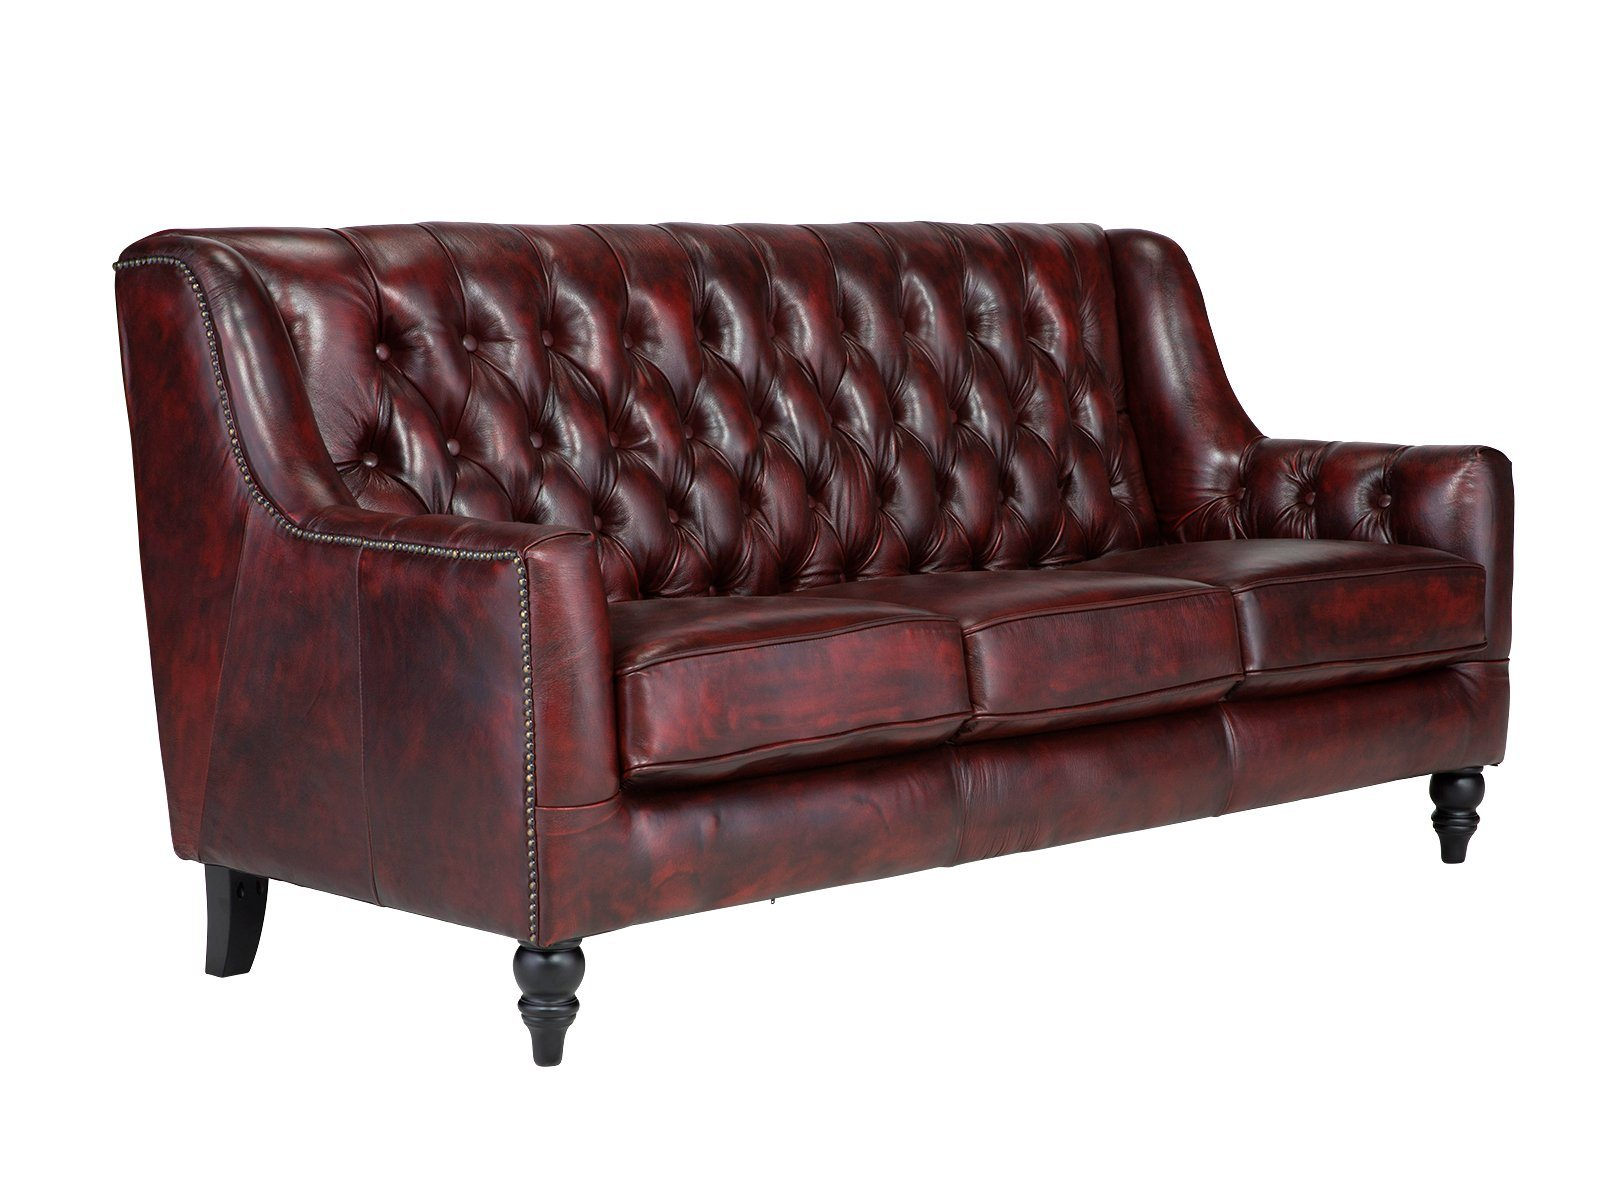 Chesterfield Sofa Rot Massivum Sofa Aus Echtleder Chesterfield Bozen Rot